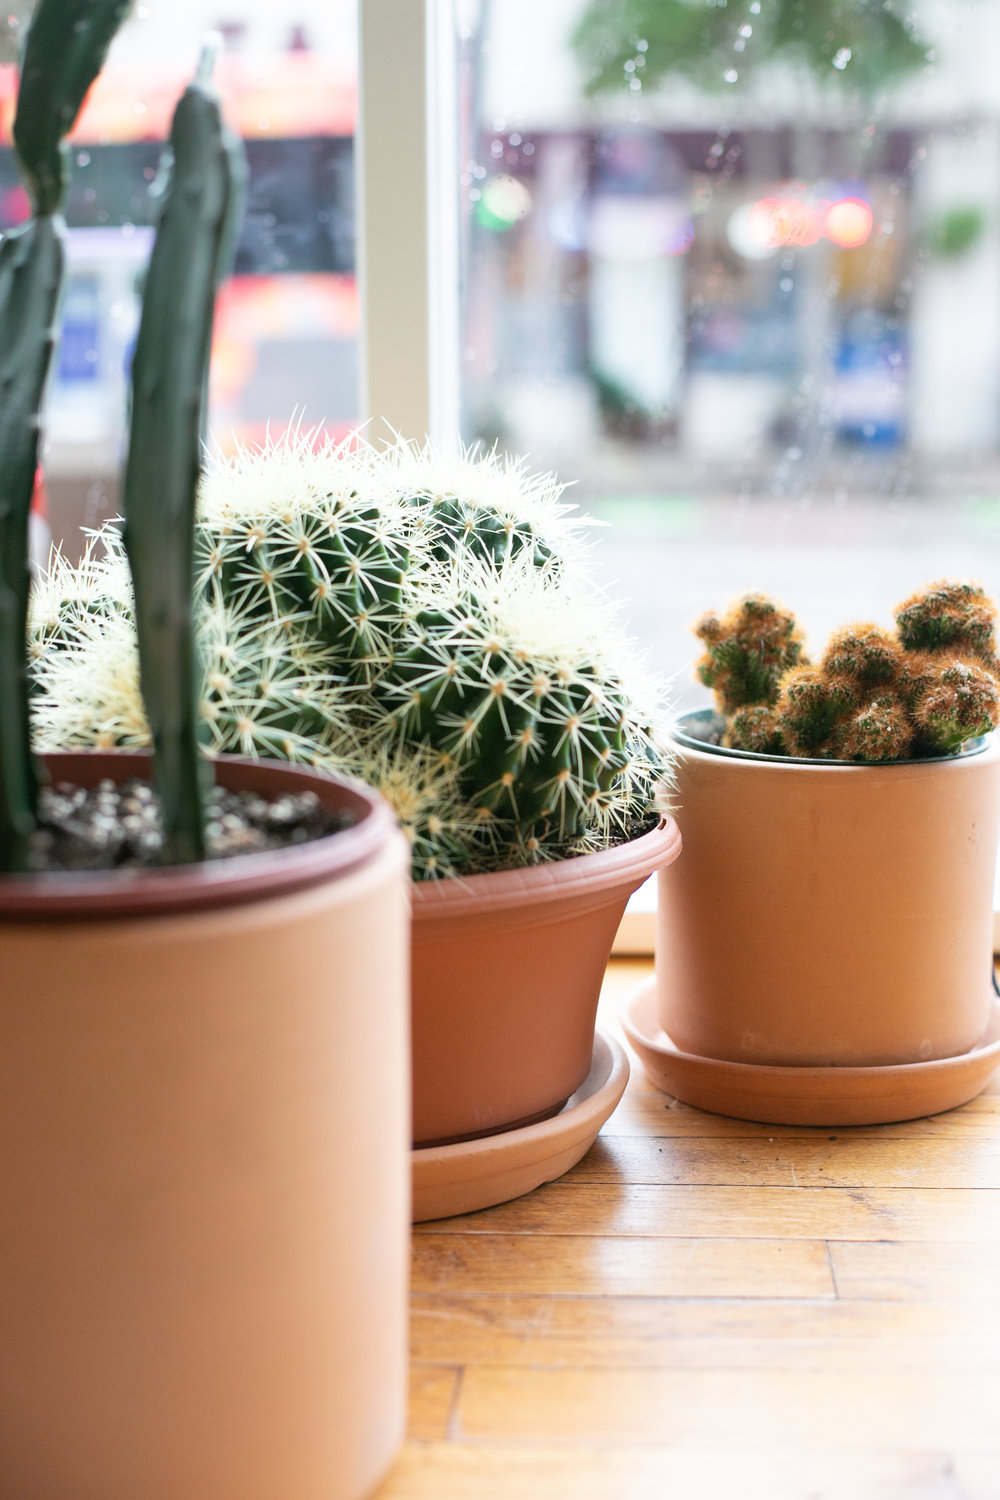 Most cactus species can go for months without watering in the winter.